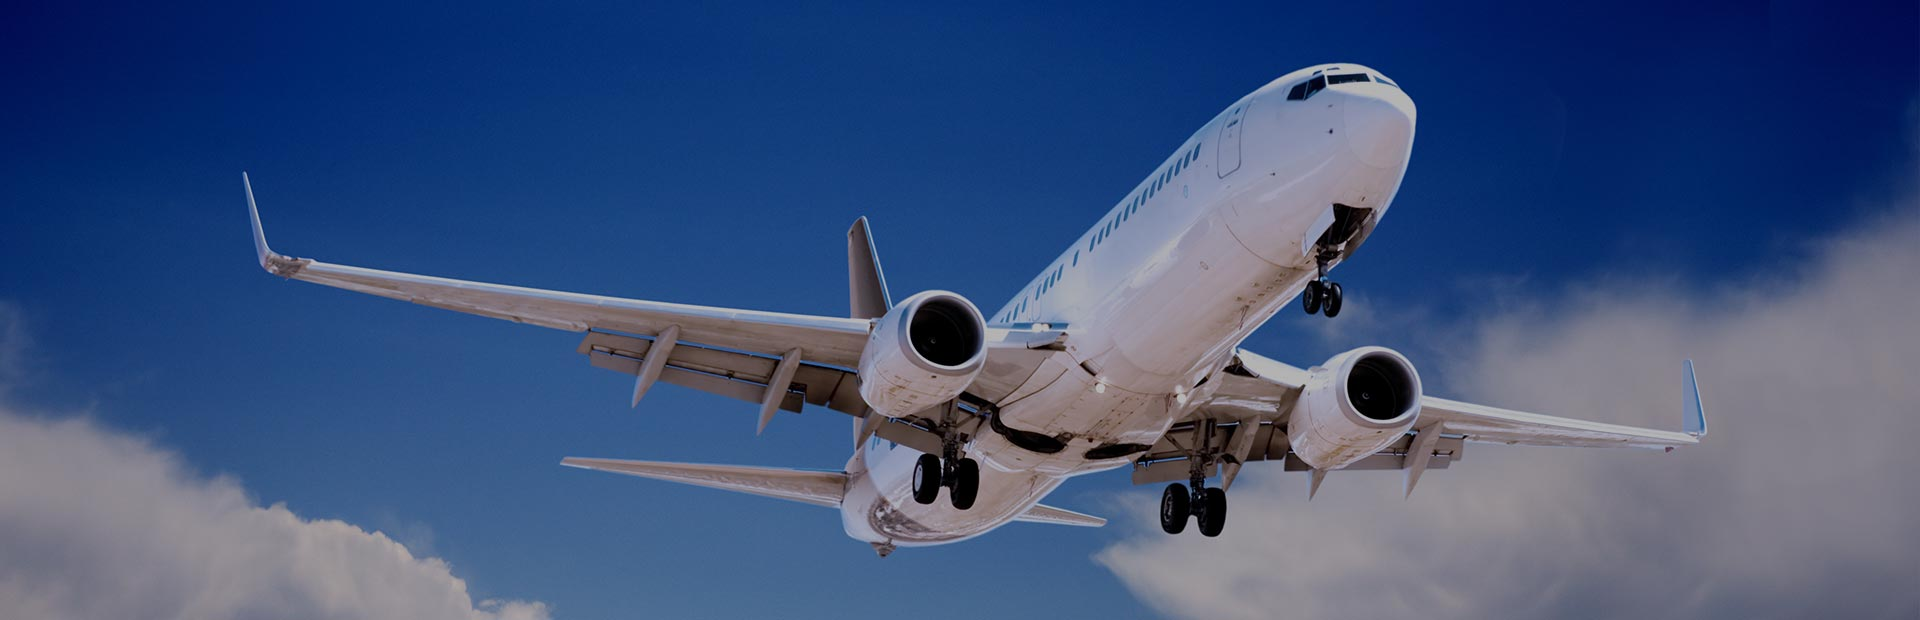 boeing 737, airplane accident lawyer